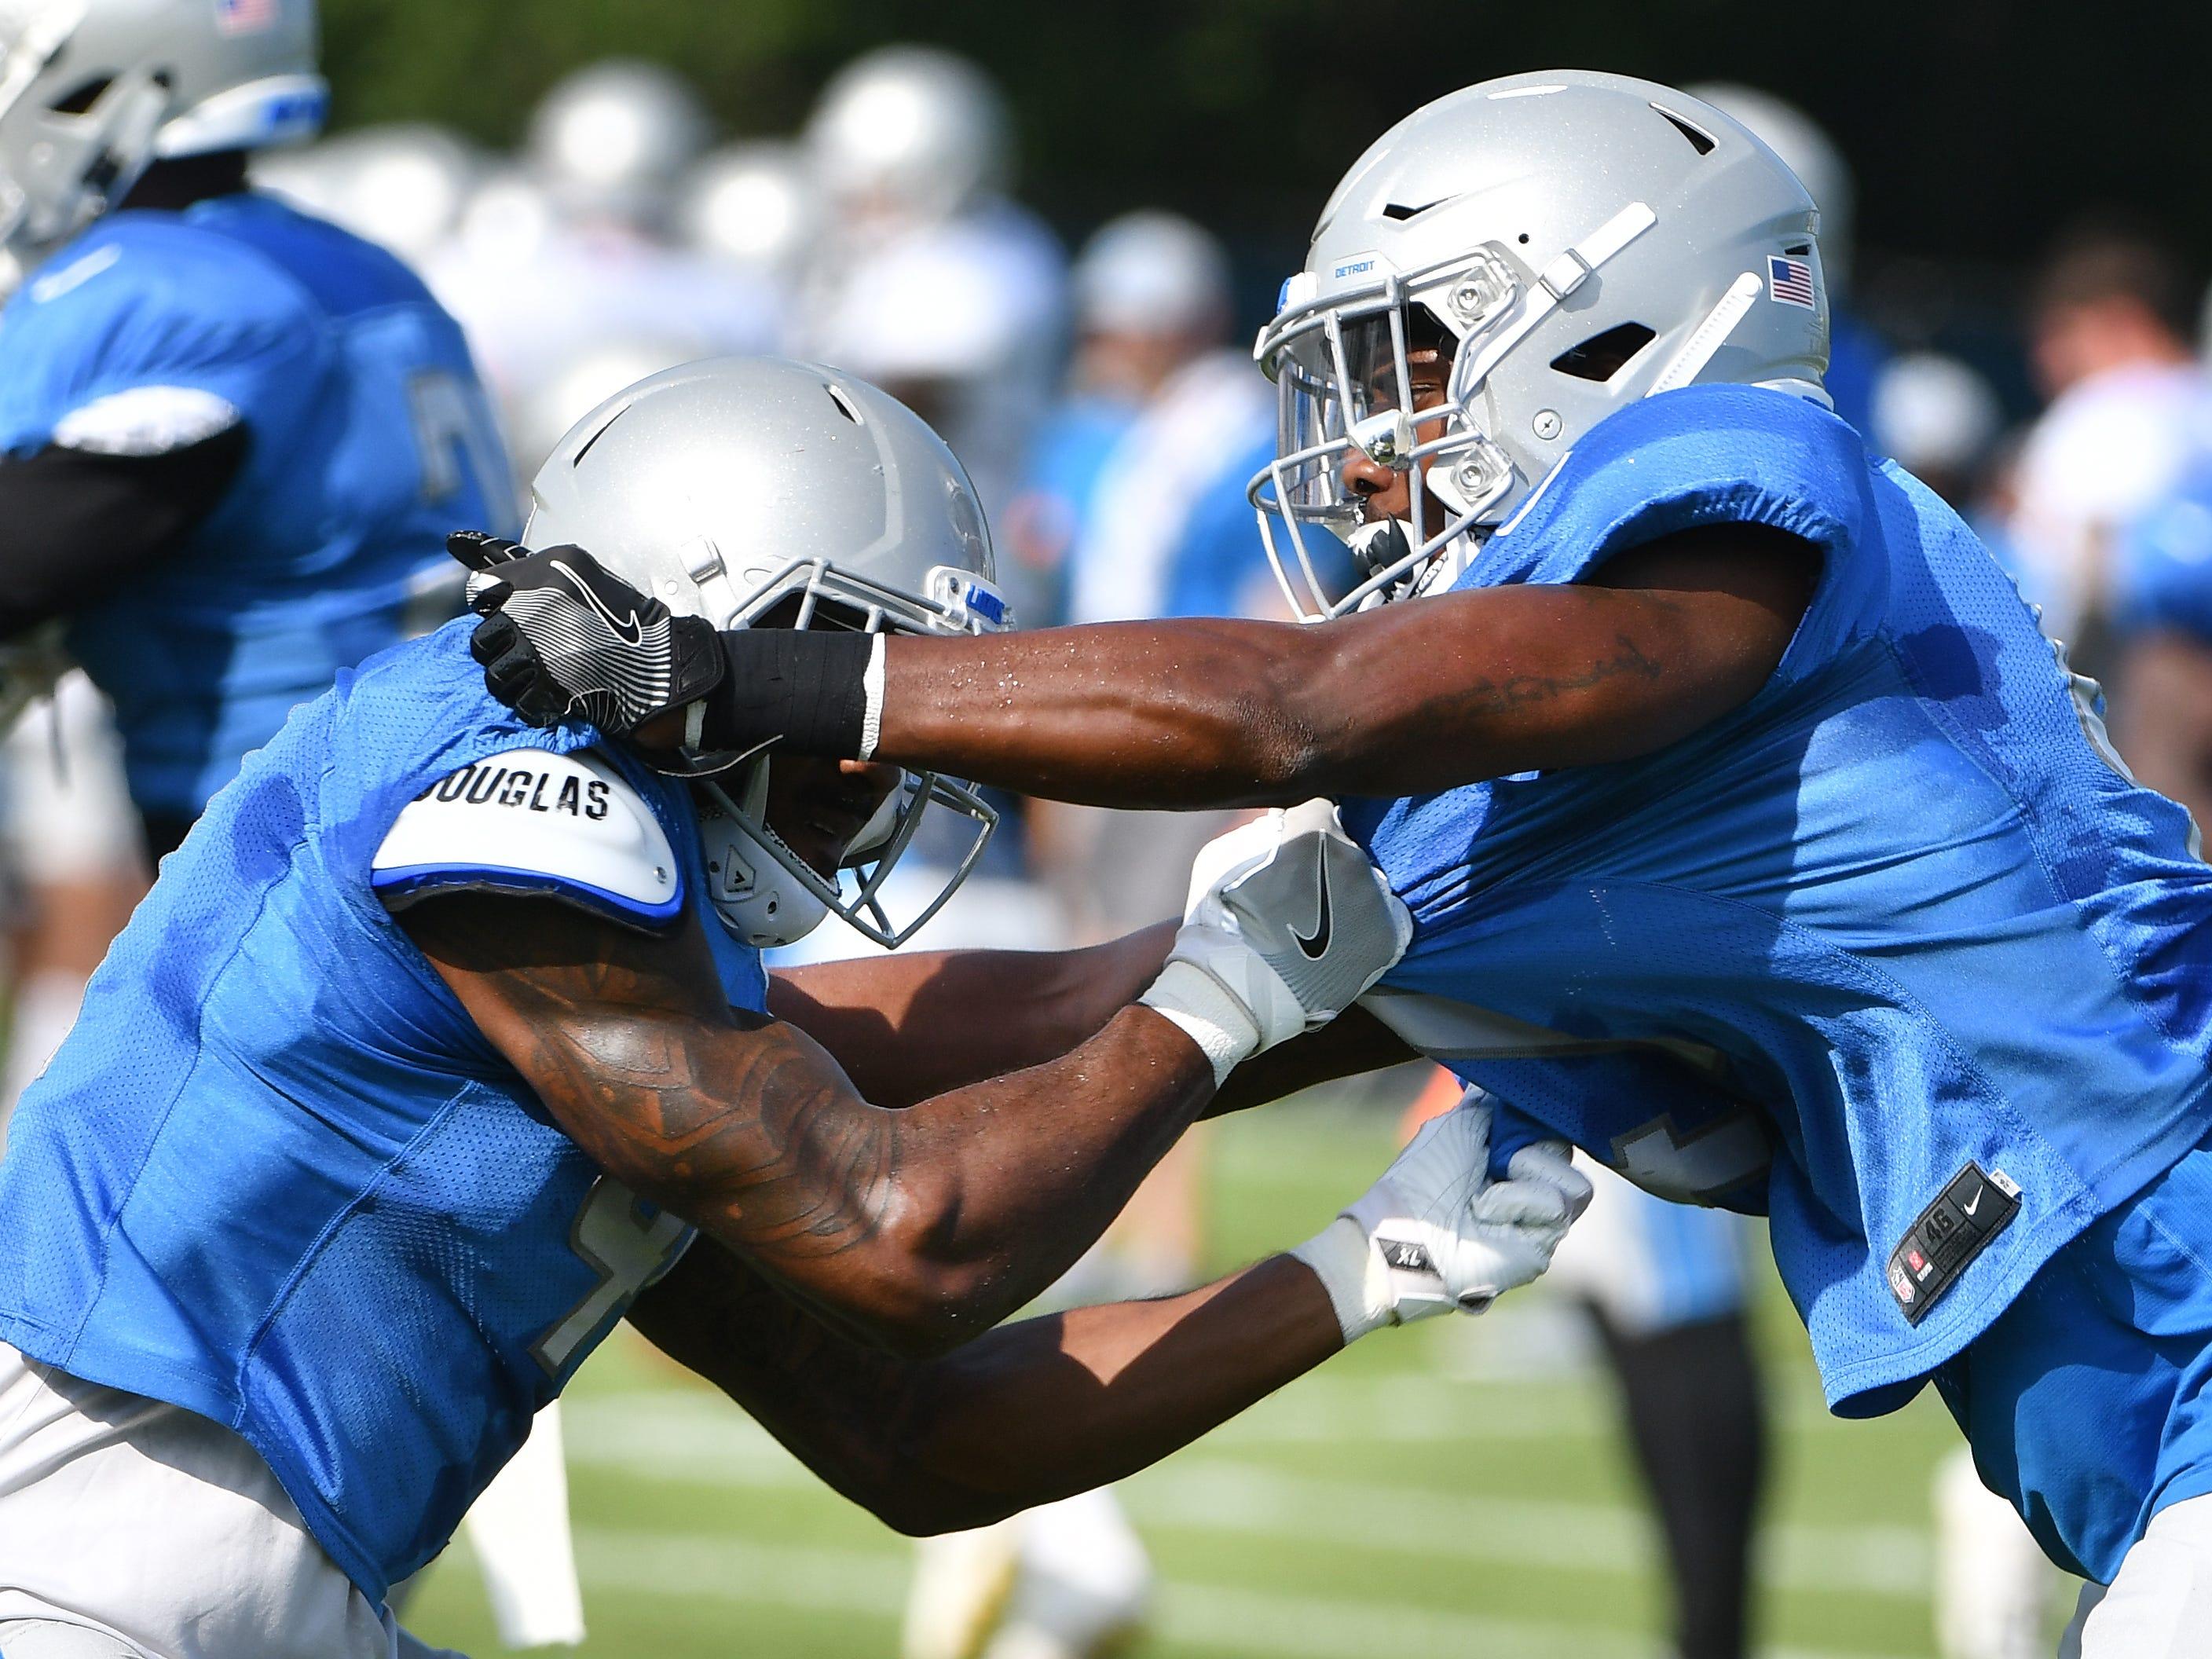 Lions safety Rolan Milligan and defensive back Tracy Walker work during drills.